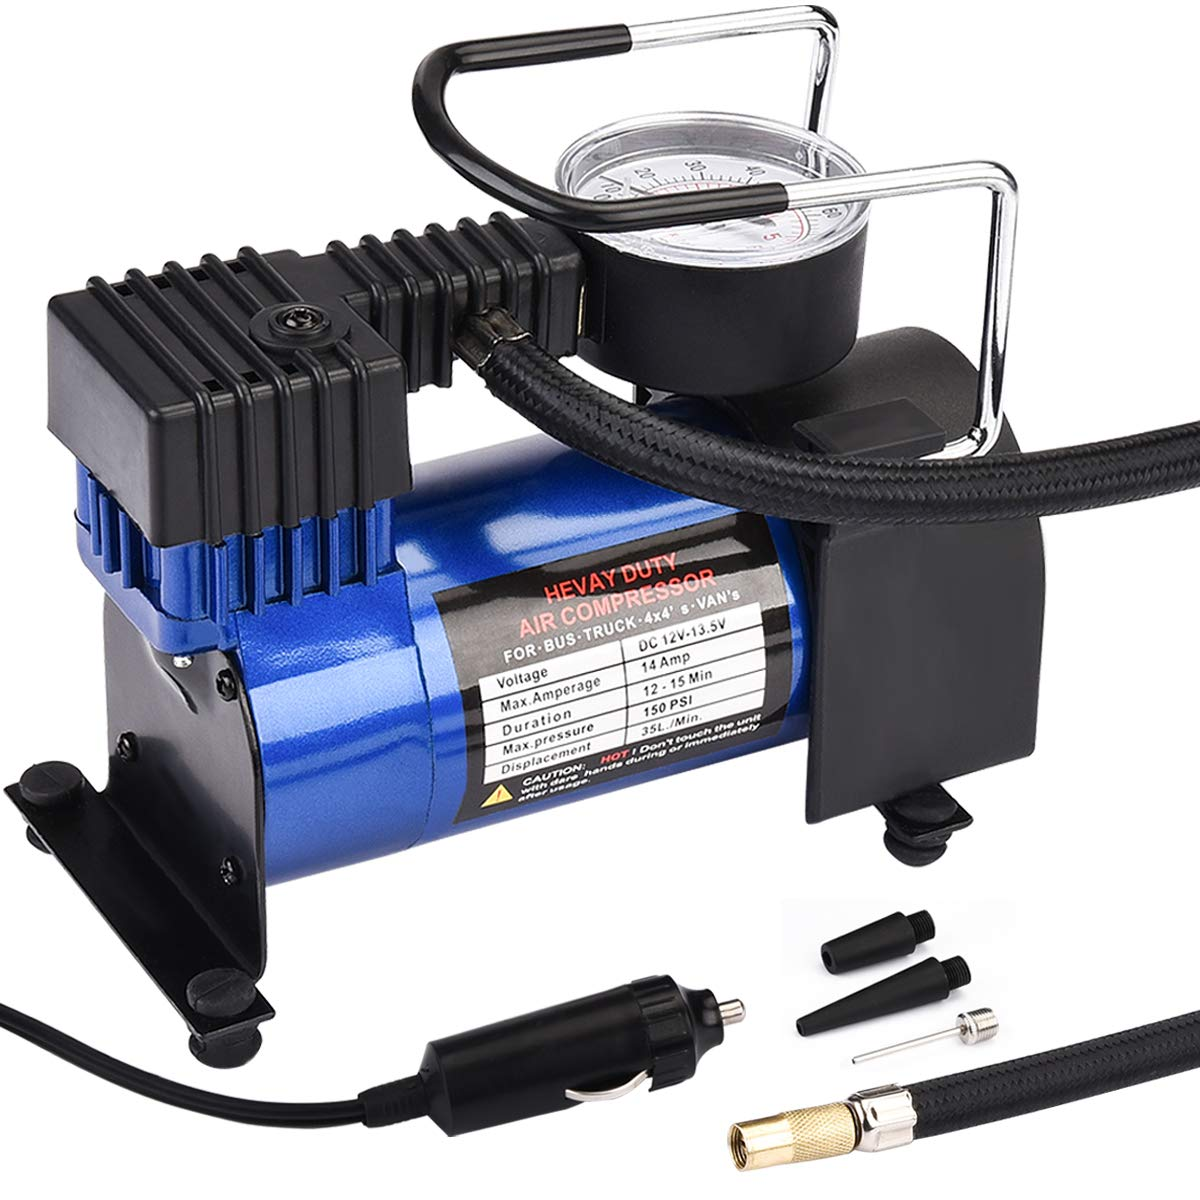 Small and powerful air compressor!